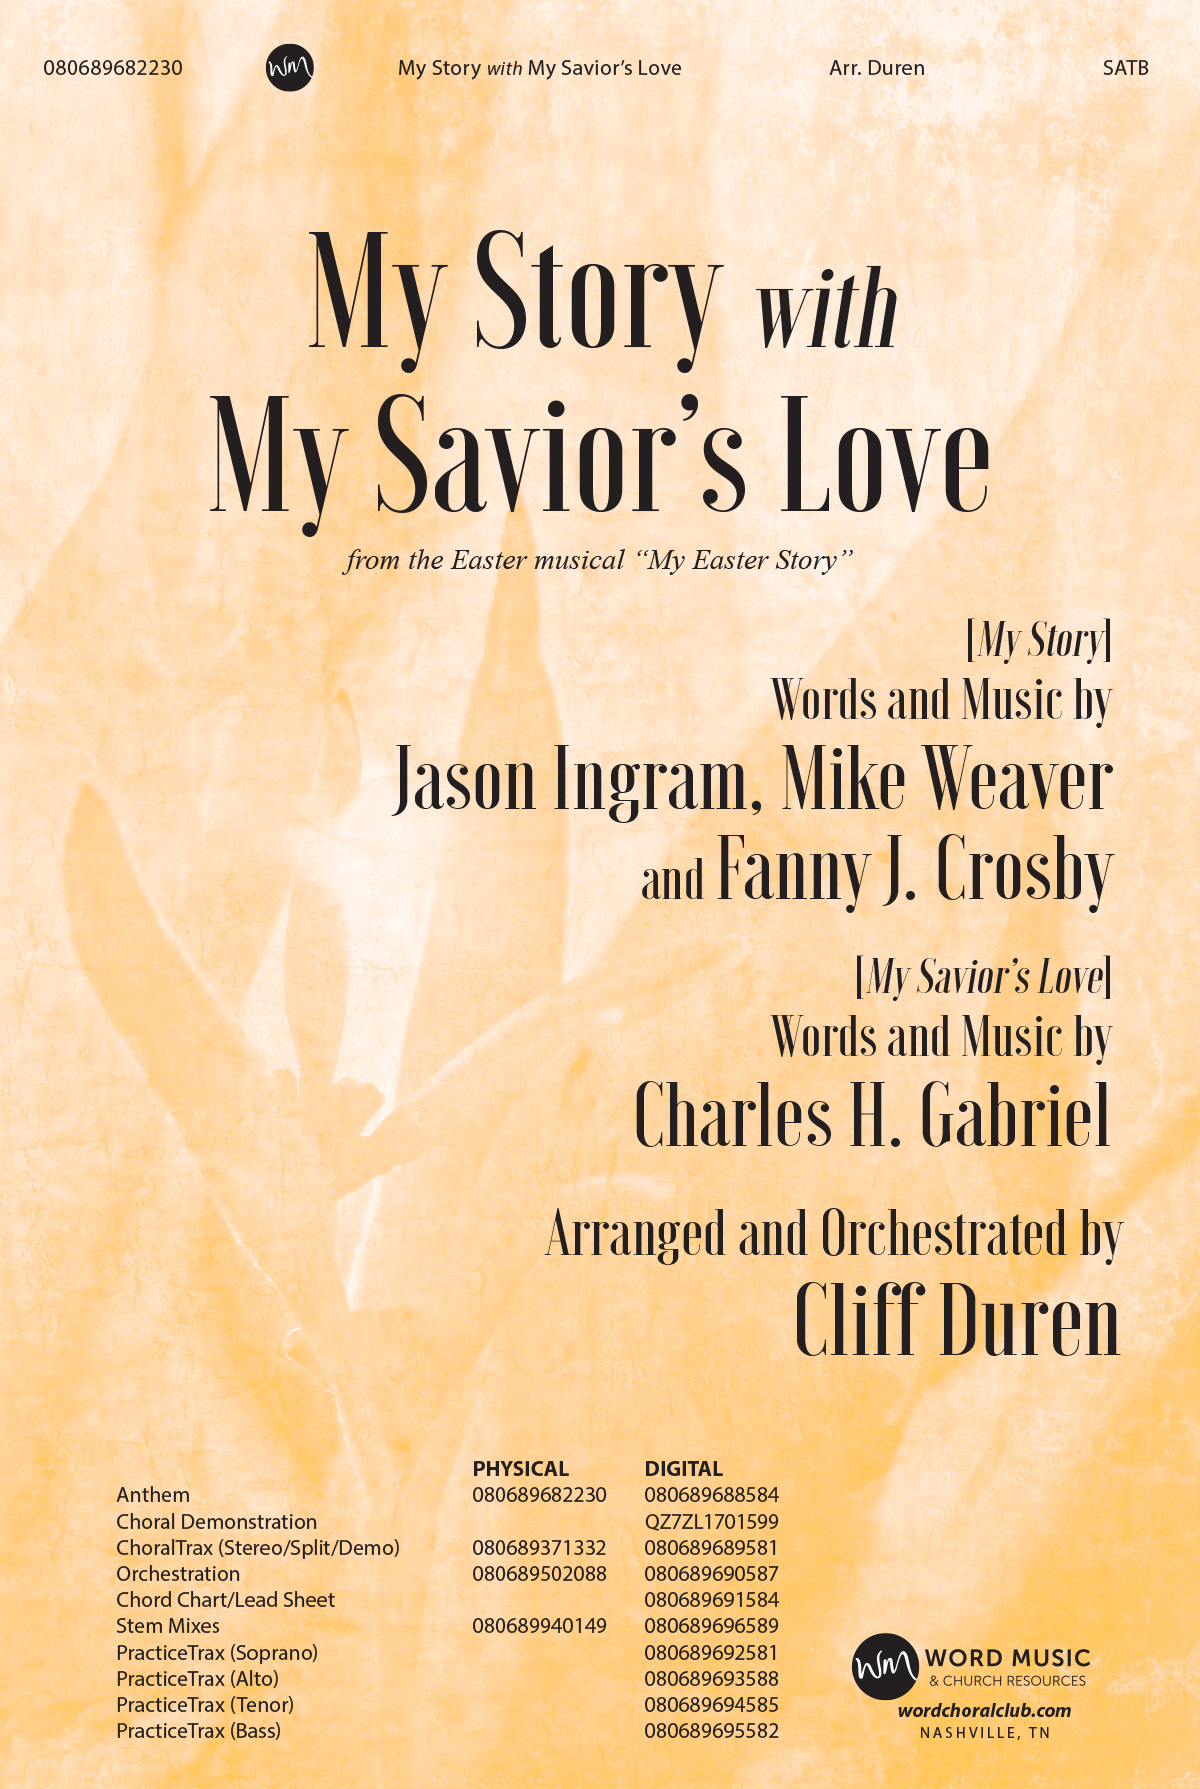 My Story with My Savior's Love